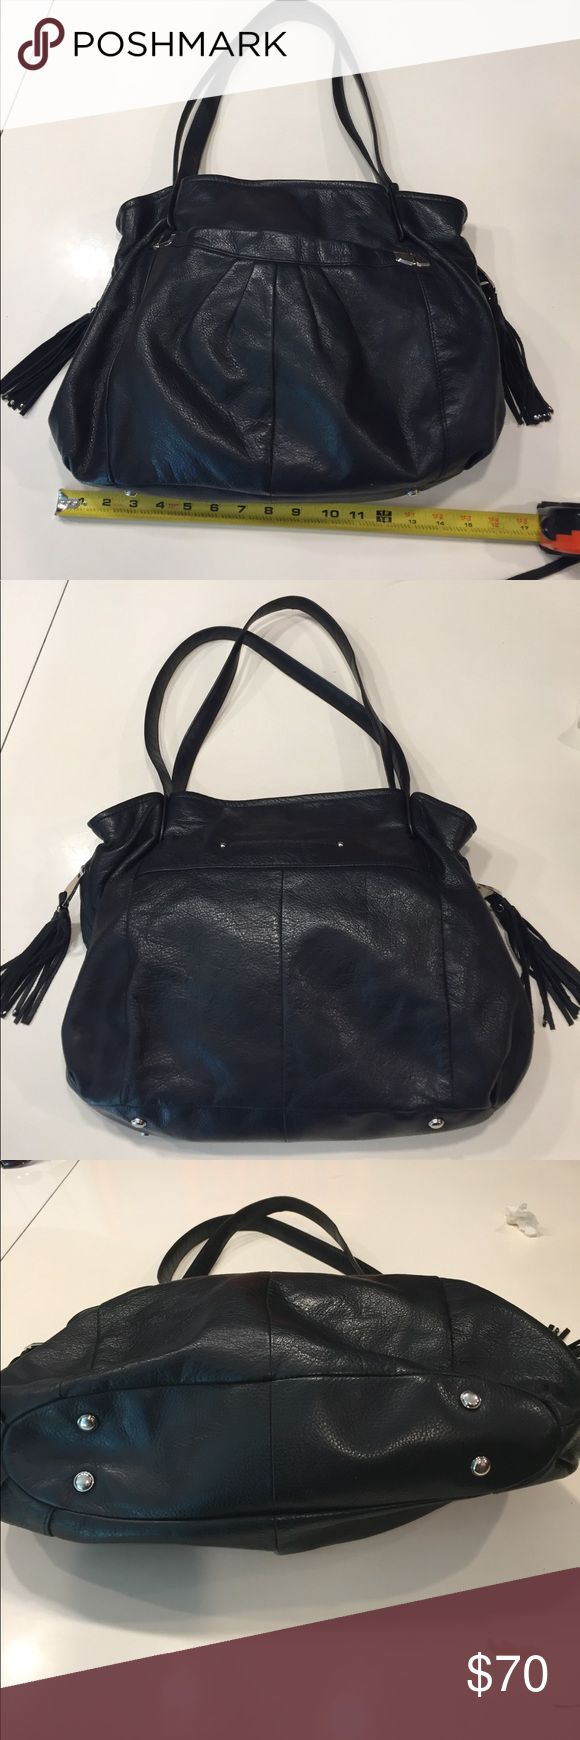 Black B. Makowsky handbag with tassels Black B. Makowsky handbag with silver metal details and tassels on the sides. If you like pockets, this bag is for you! 1 on the front with a magnetic closure. 1 on each side with a zip closure. 1 small open pocket on the back plus 3 on the inside. The interior has a zippered divider with a leopard print lining. Minor wear on the bag but still in very good condition. b. makowsky Bags Shoulder Bags